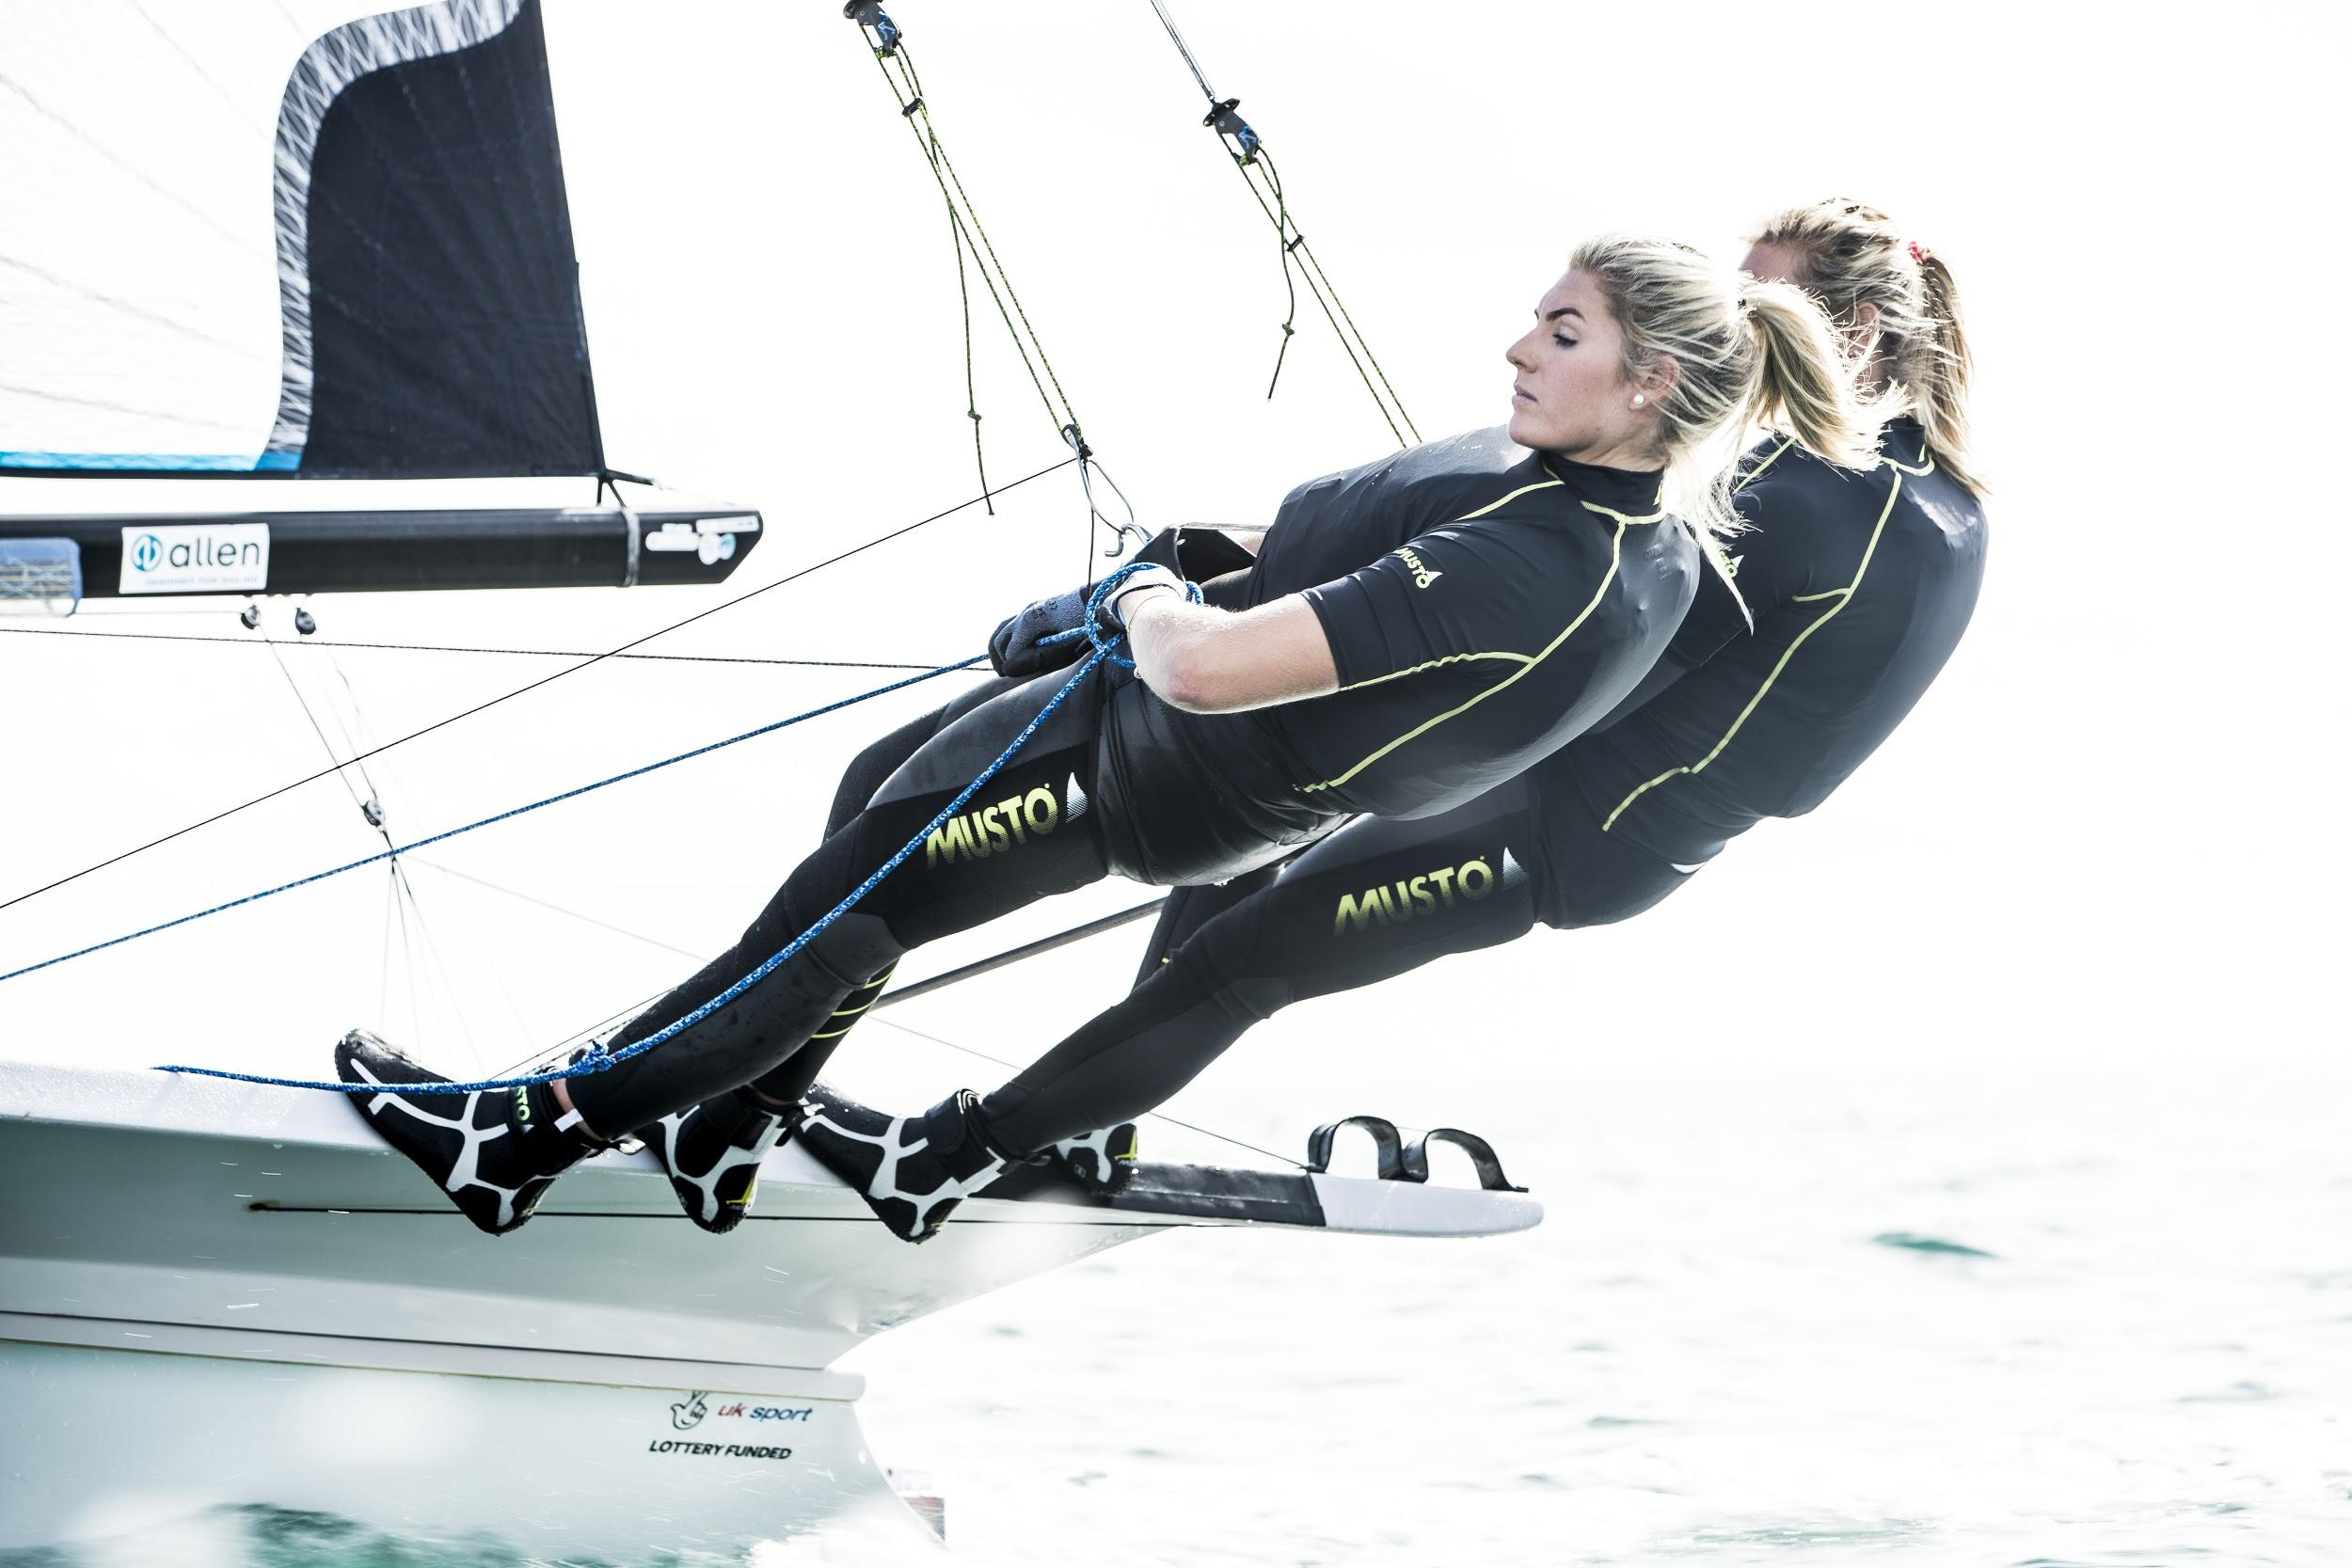 Photo credit: Sailing brand -  MUSTO  Fabric technology features include fast-drying and super lightweight UV and impact protection, delivering superior comfort and agility to active sailors.